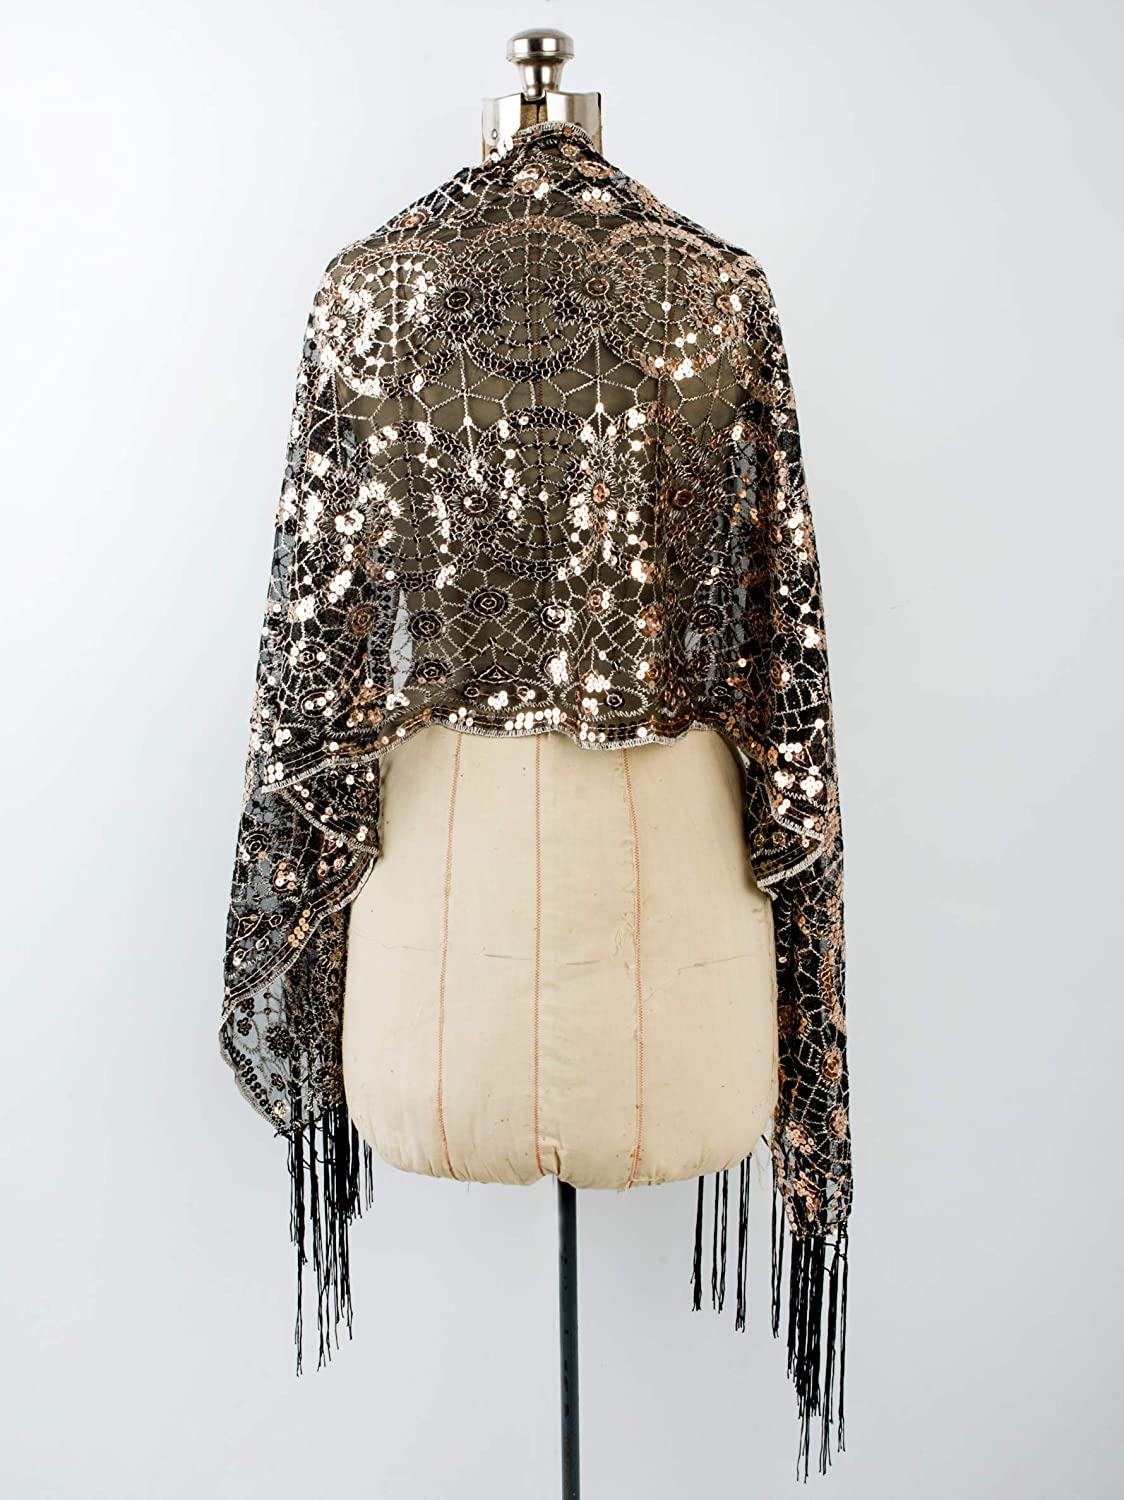 Downton Abbey Costumes Ideas Bohomonde Vera Vintage Inspired Sequin Shawl Evening Wrap Embroidered Sequin Fringe Shawl or Scarf $18.95 AT vintagedancer.com